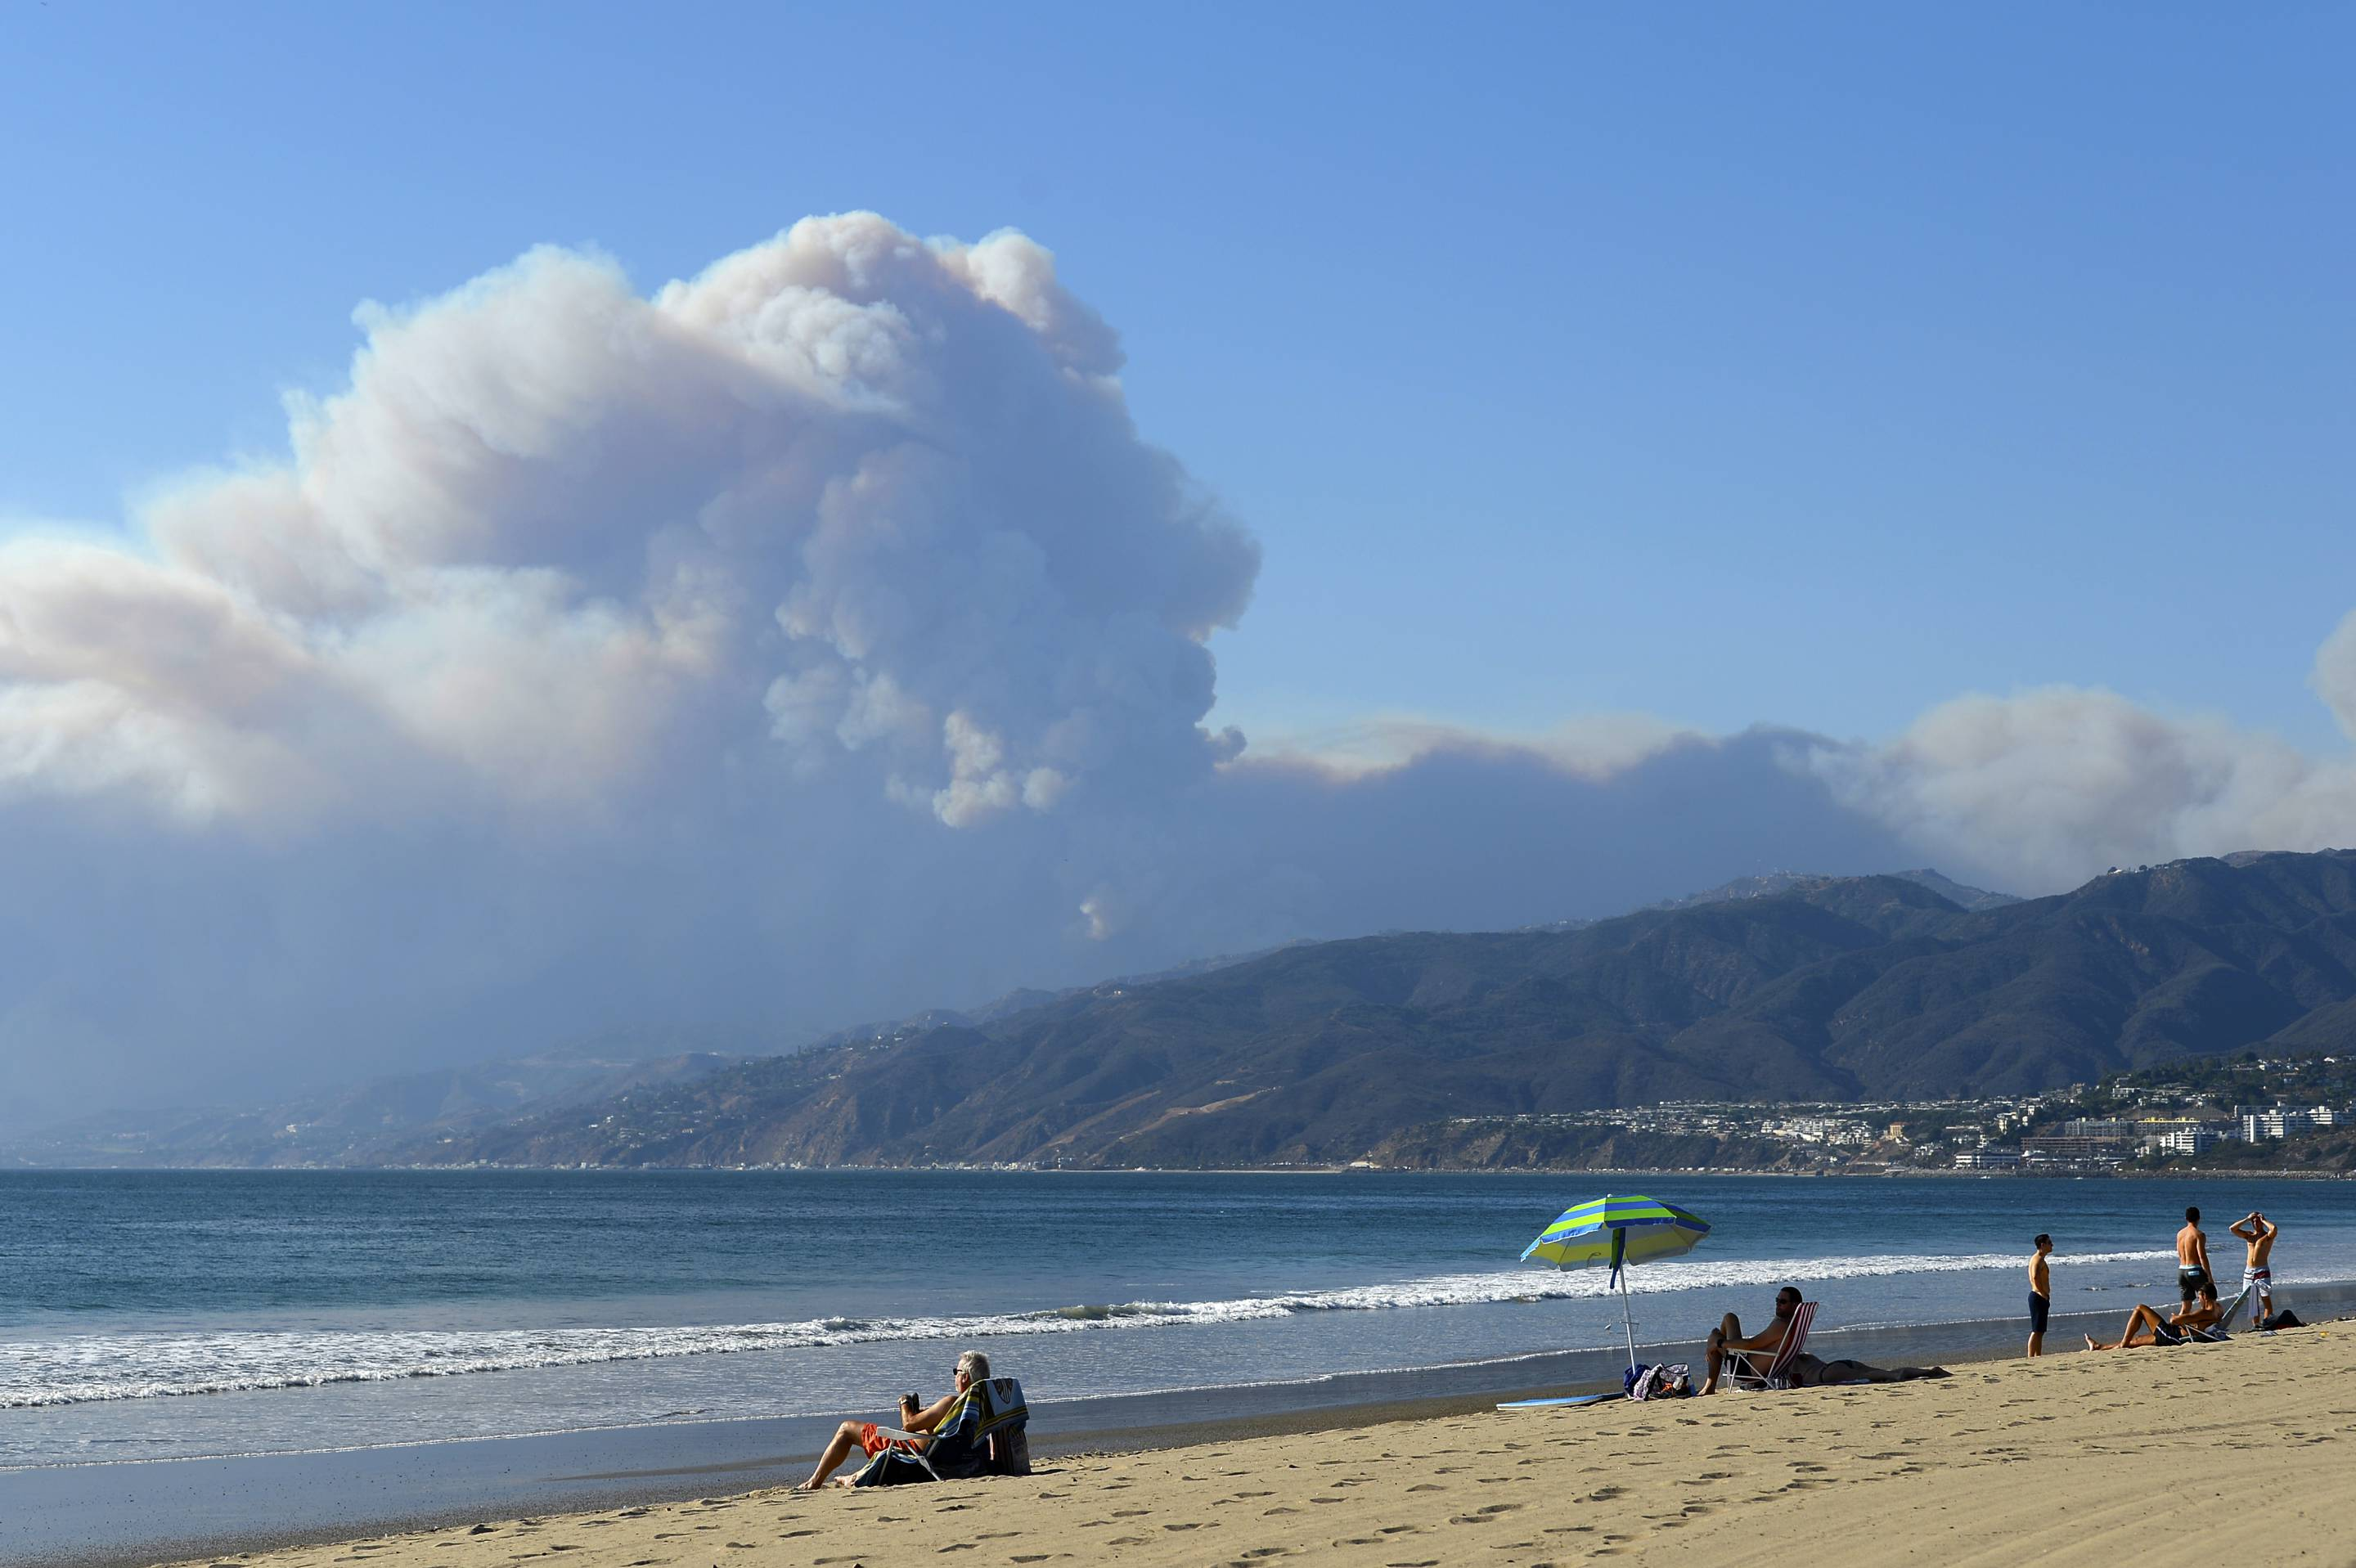 How To Help And Stay Informed With The Camp Fire and Woolsey Fire